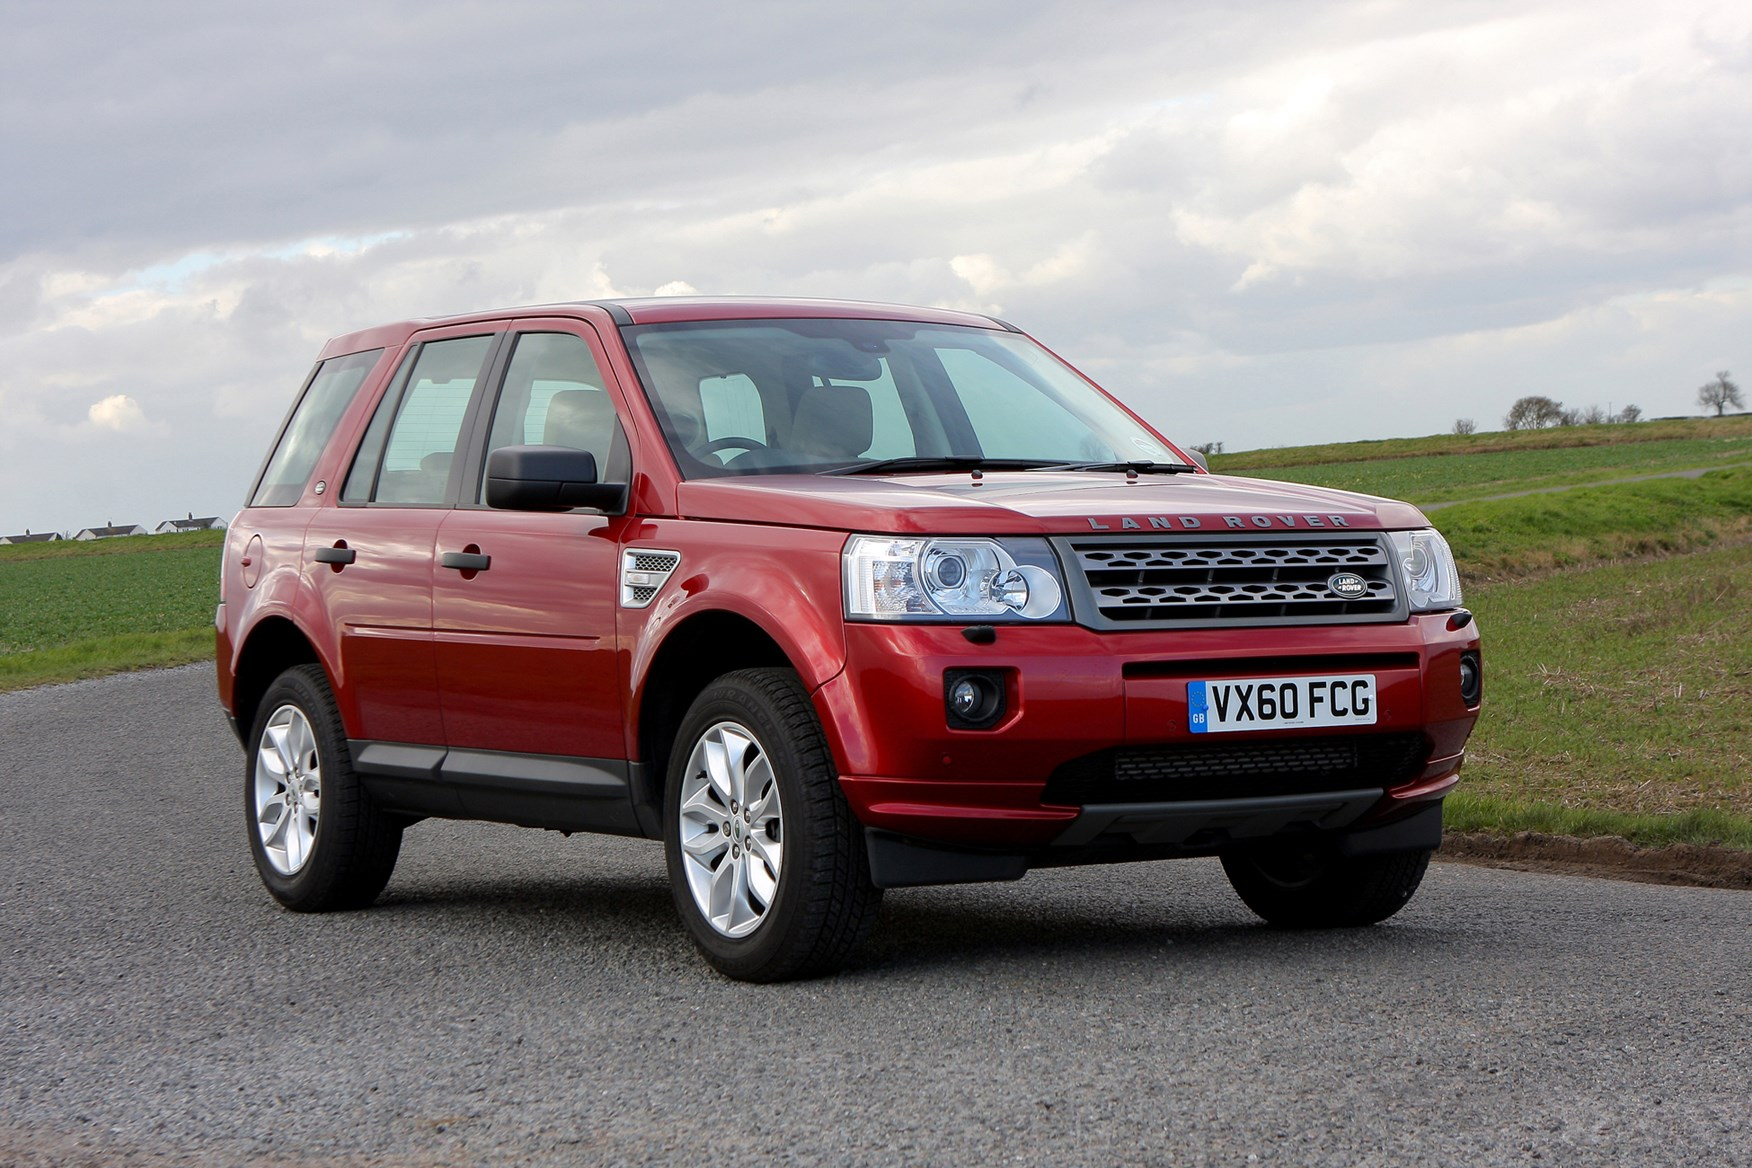 land rover freelander station wagon 2006 2014 photos parkers. Black Bedroom Furniture Sets. Home Design Ideas